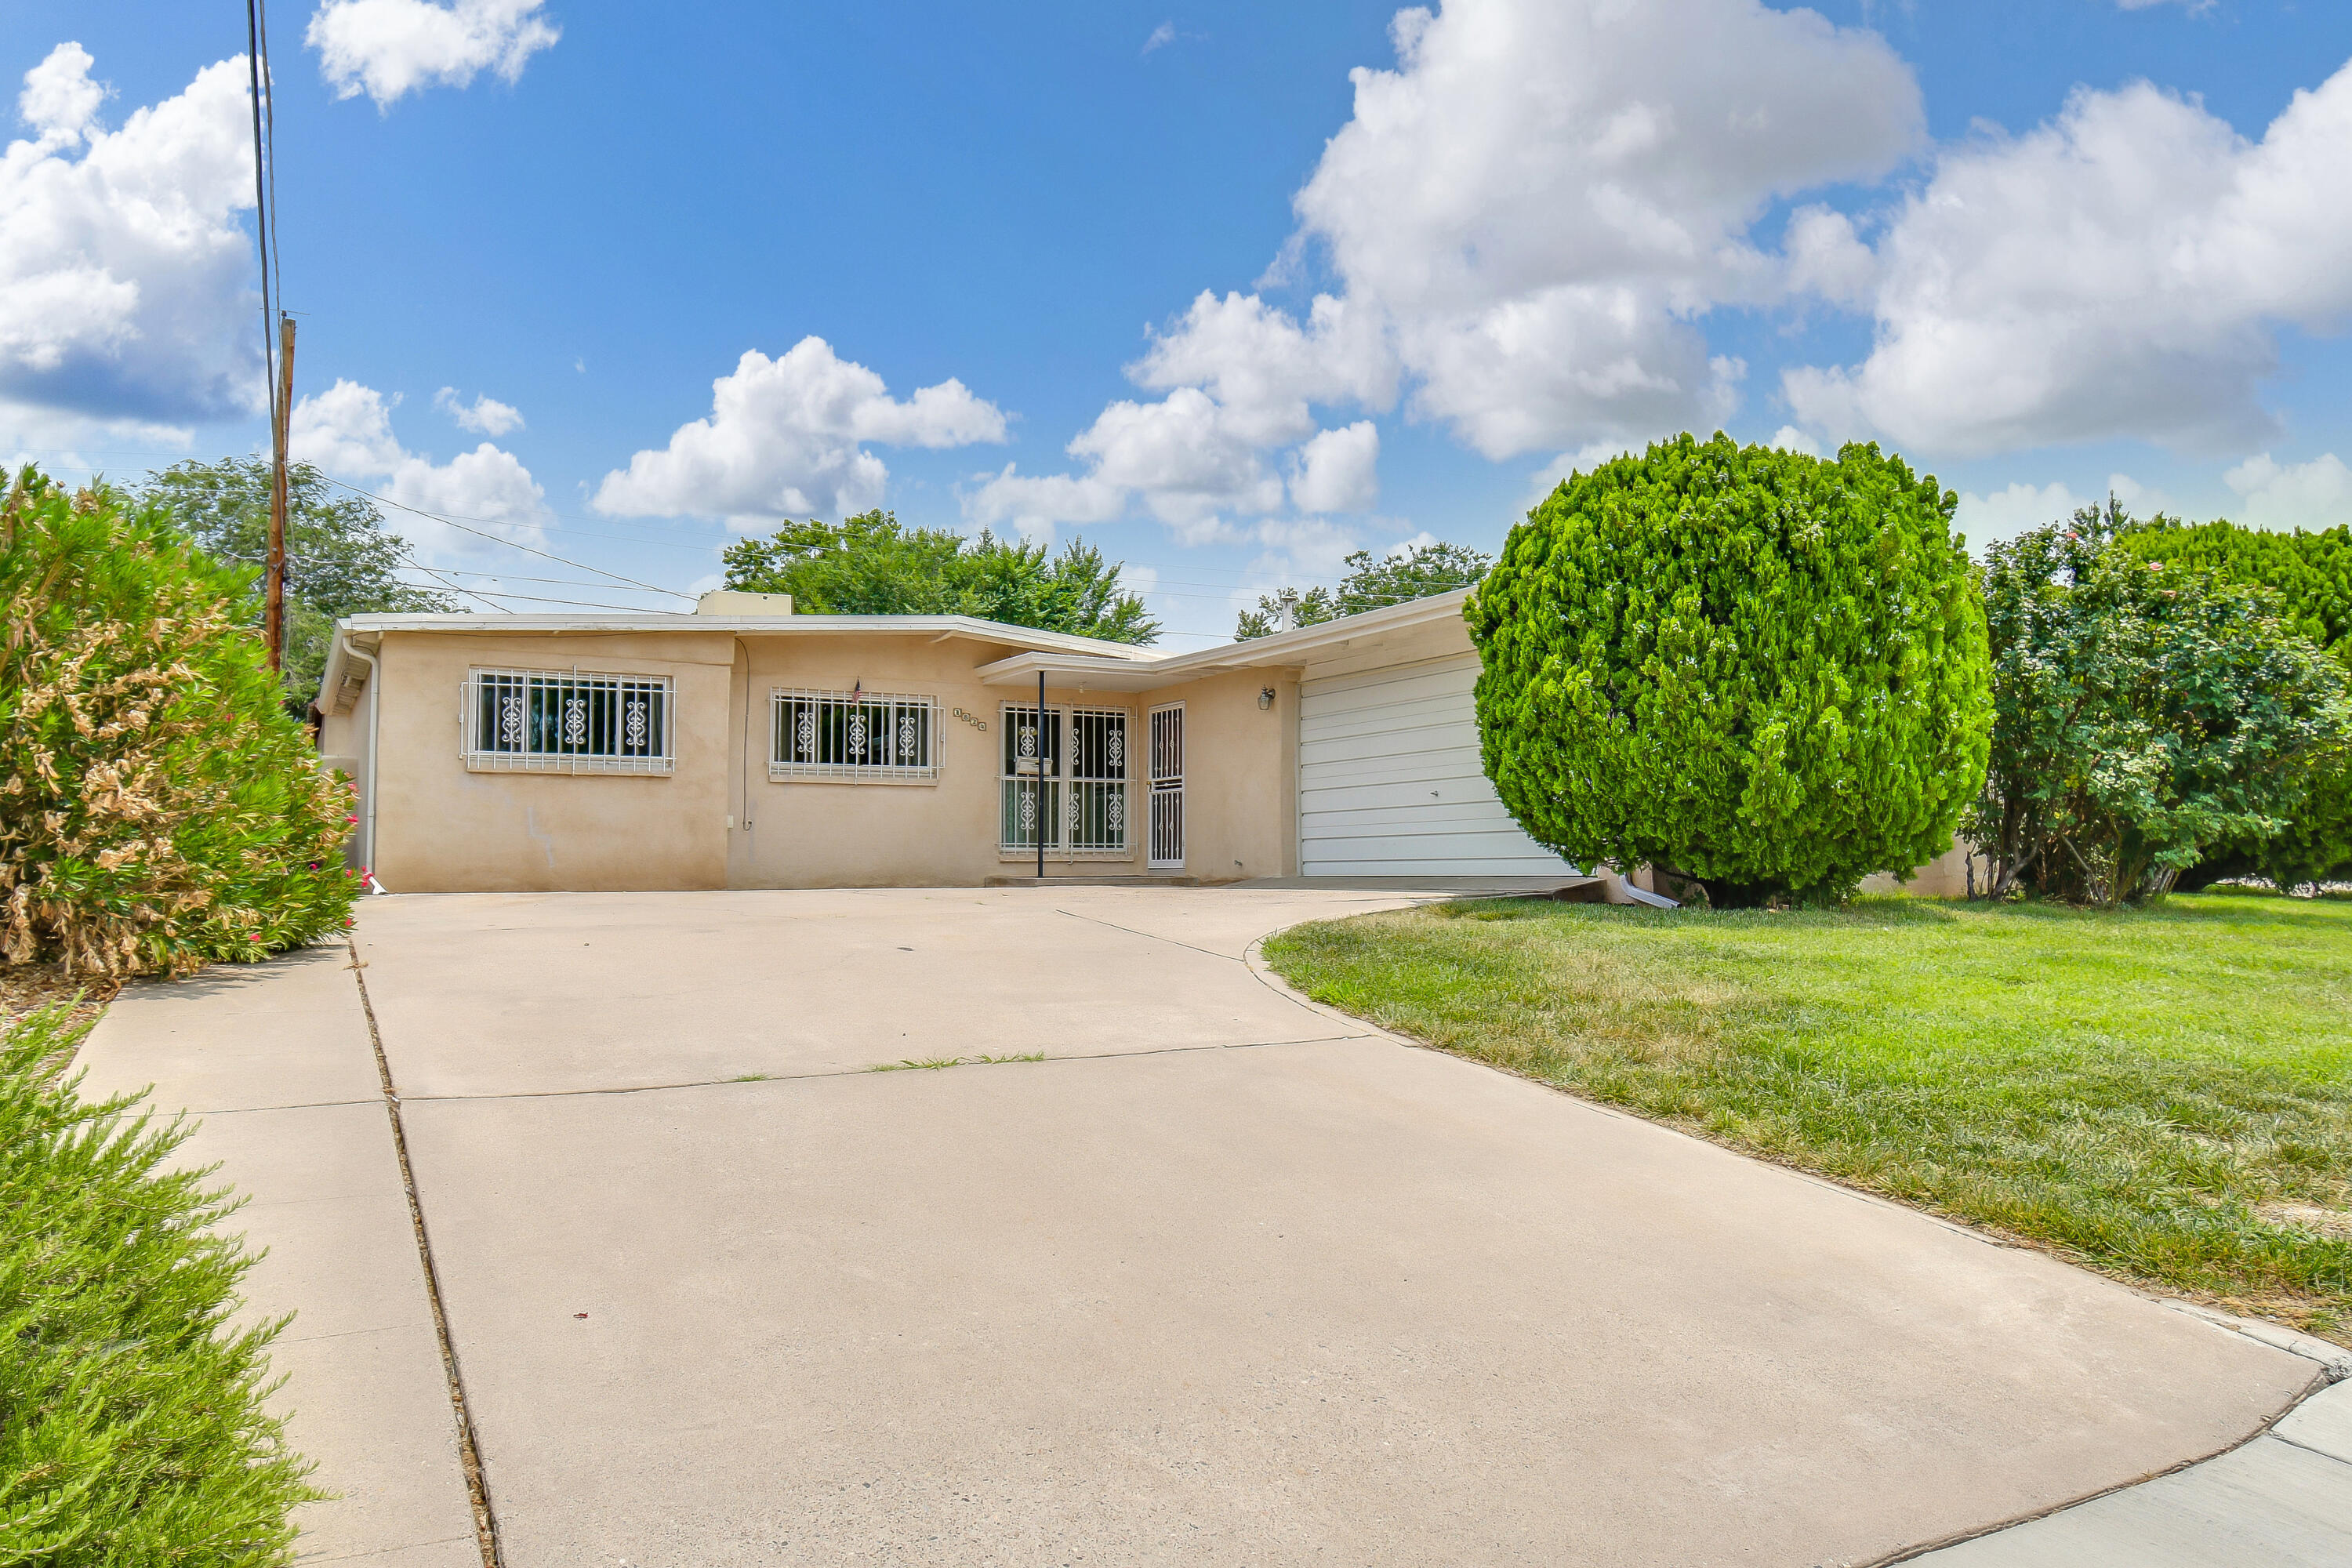 Great Northeast Heights location with Charming Curb appeal!! Open Kitchen, Dining, and Living area make a great place to entertain family and friends! The updated kitchen boasts granite countertops, hickory cabinets, updated light fixtures, and tile flooring. Beautiful newer laminate floors throughout the main living area and bedrooms! There is a flex space off the Dining room and Owners suite that can be used as a second living or dining area, game room, or craft room! Relax after a long day out on the large covered patio. Transferable roof warranty good until 2027 upon transfer! There is a 9x10 Tuff Shed in the back to store all your yard tools. Take a virtual walkthrough tour or schedule a private showing!